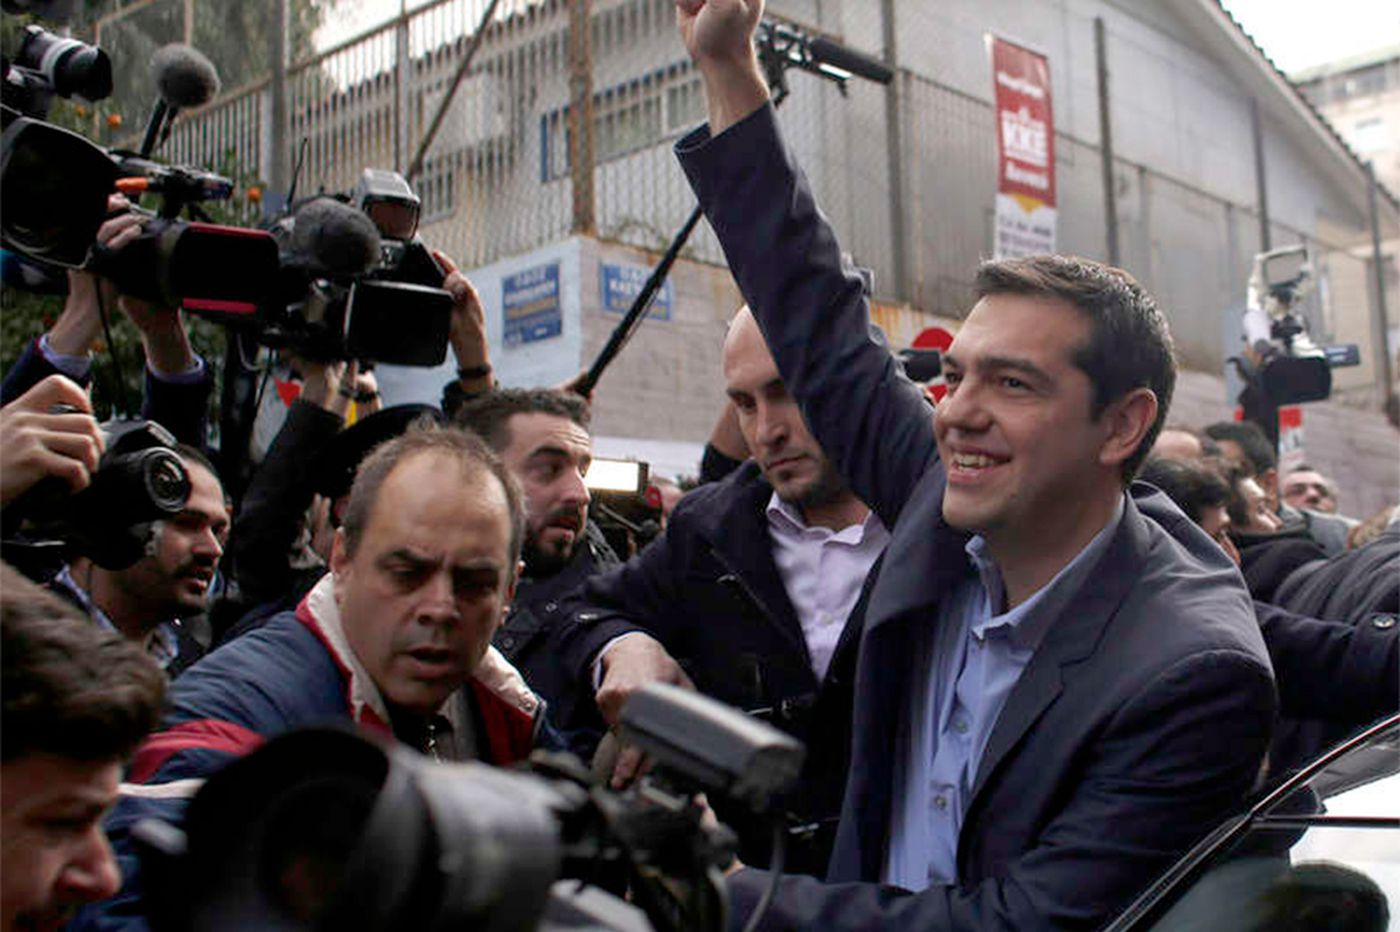 Worldview: Europe's elites need to watch the signals from Greece